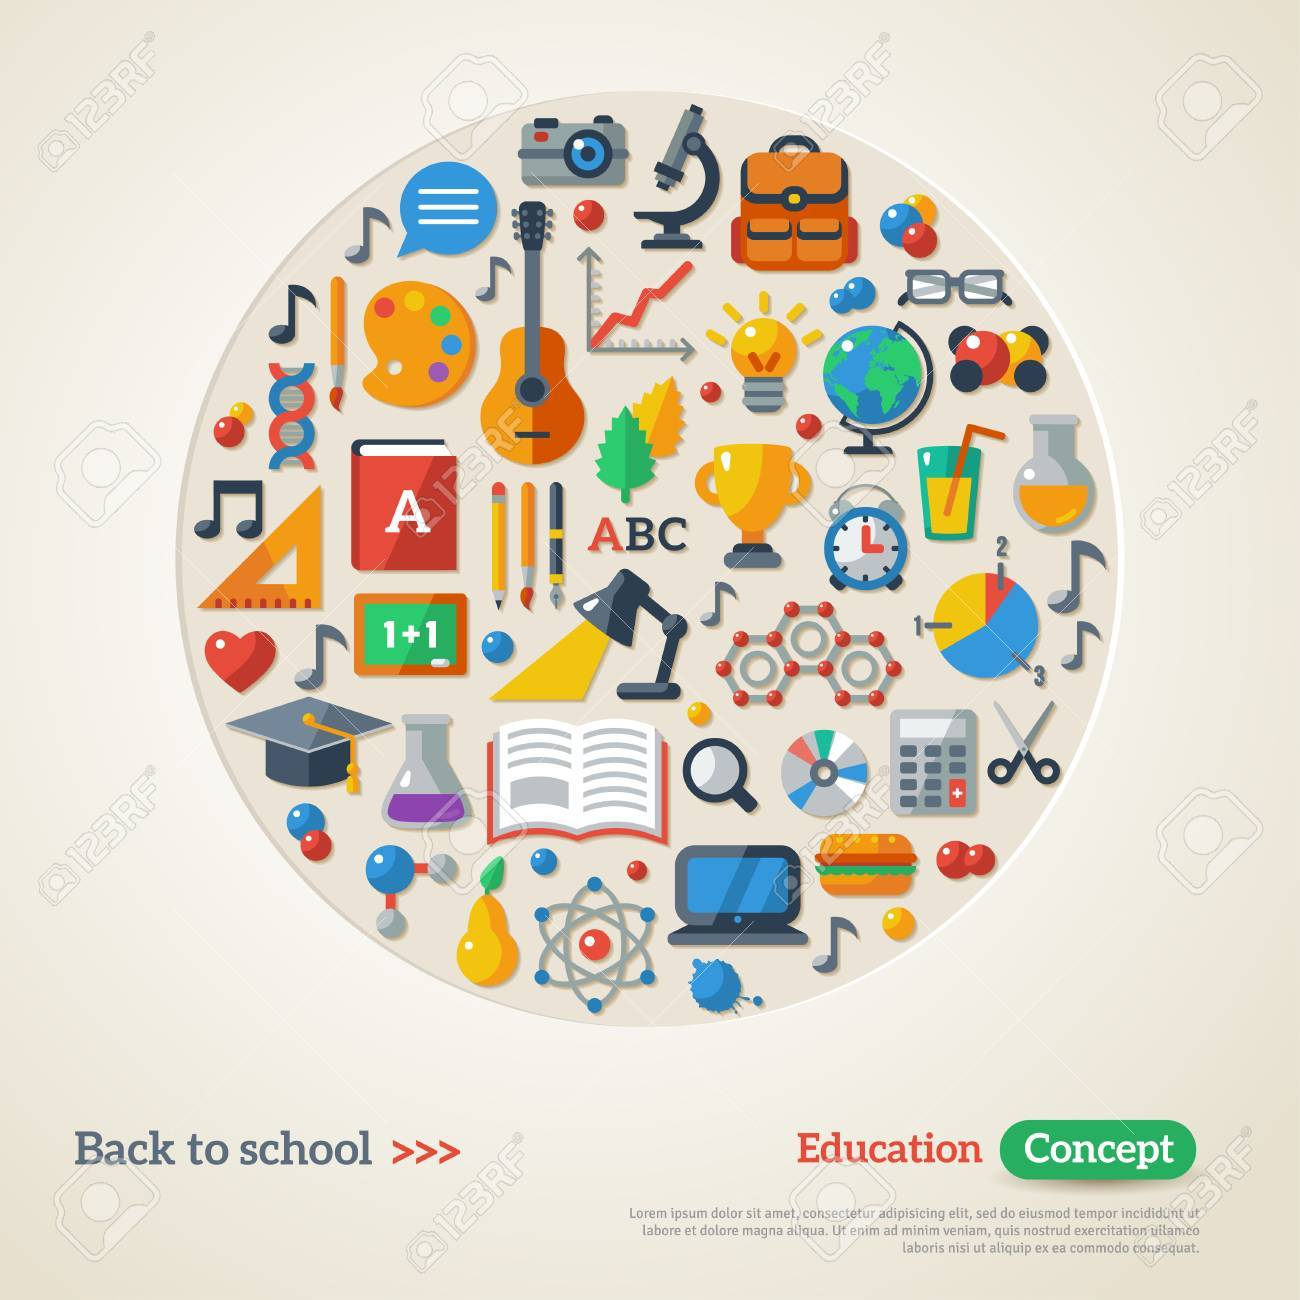 Back to school background. Vector Illustration. Education concept. Flat Icon Set. Concept of the high school object with teaching and learning symbols. - 42610466